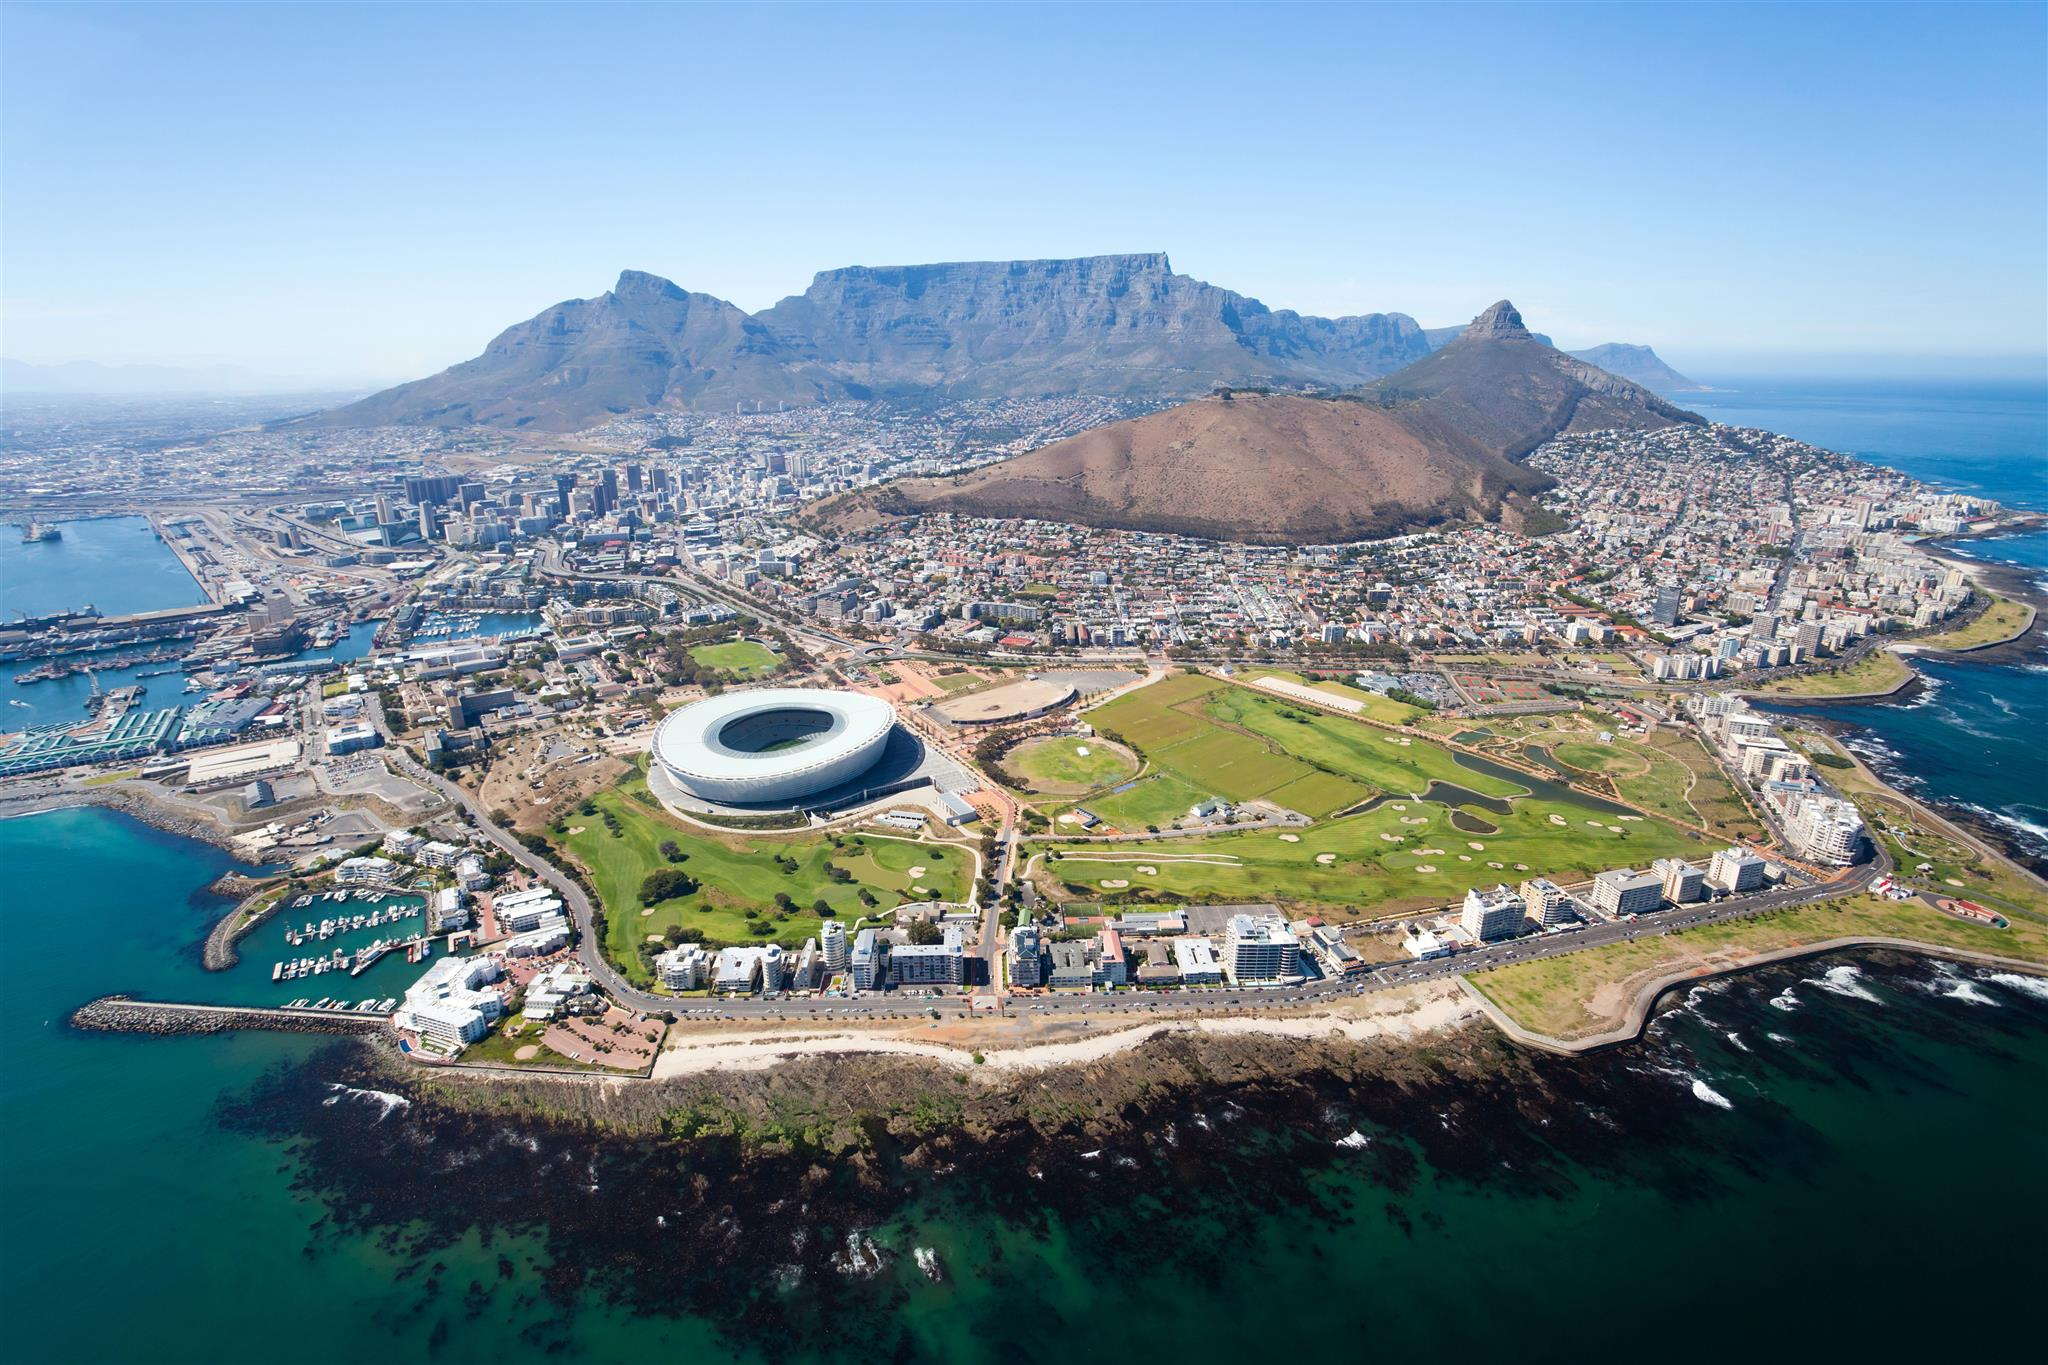 Aerial view of Mouille Point